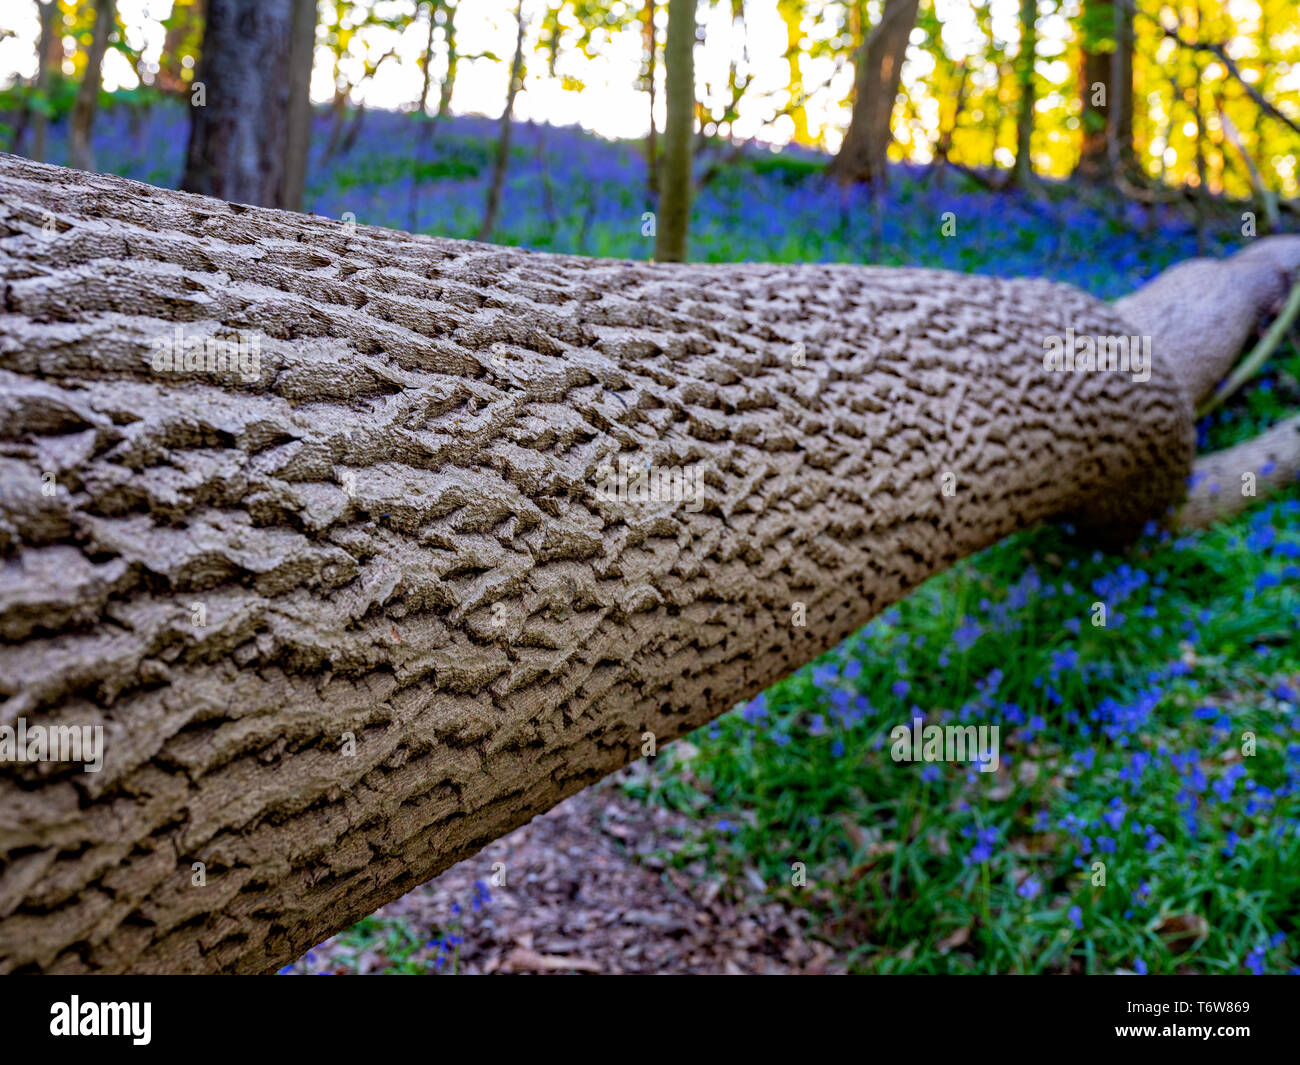 Fallen tree showing texture of bark, with low depth of field, in a bluebell wood in the spring.  England, UK. - Stock Image